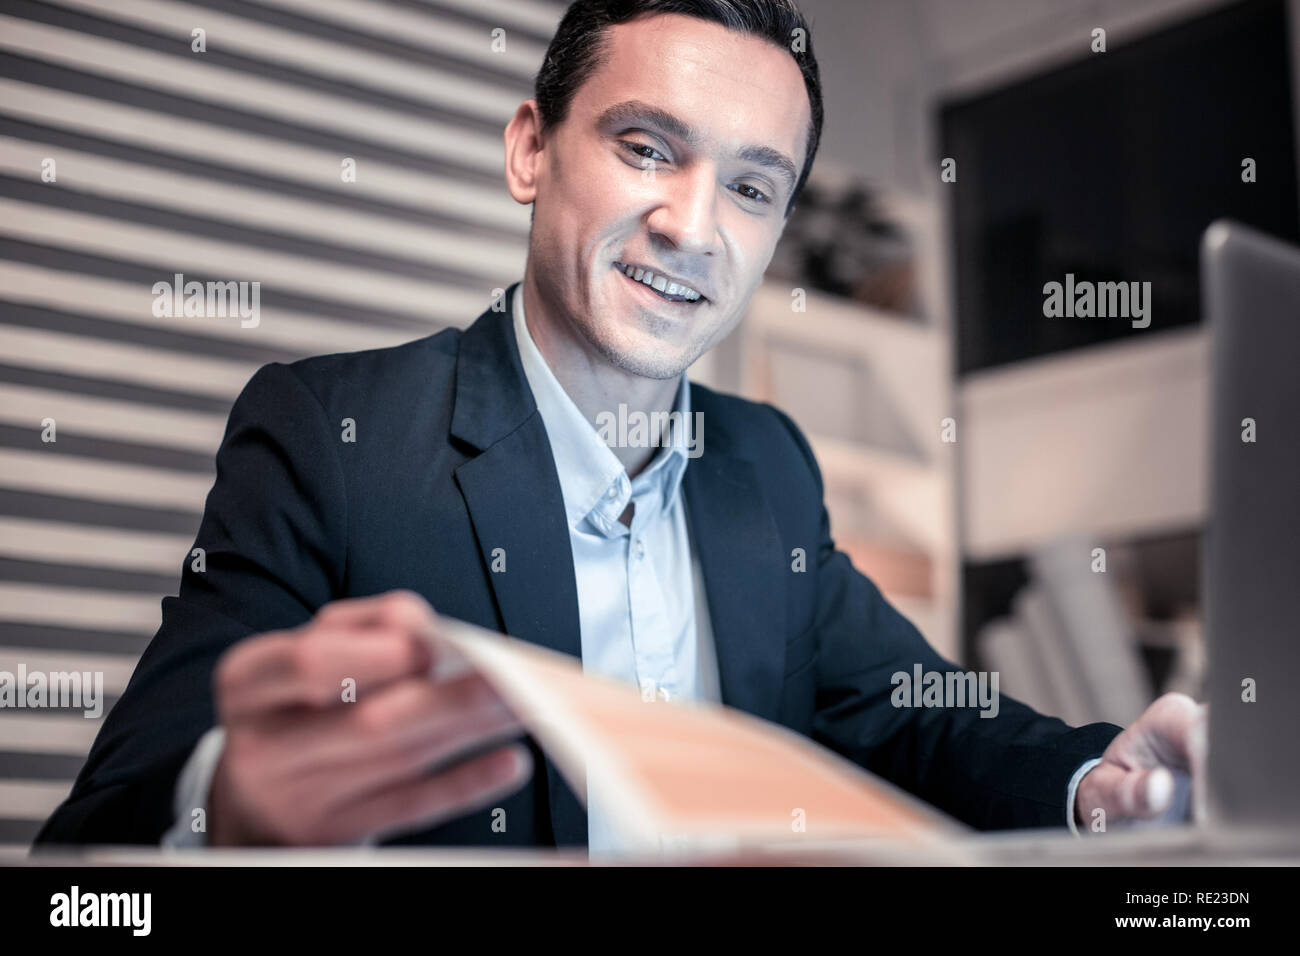 Cheerful positive smart man being at work - Stock Image